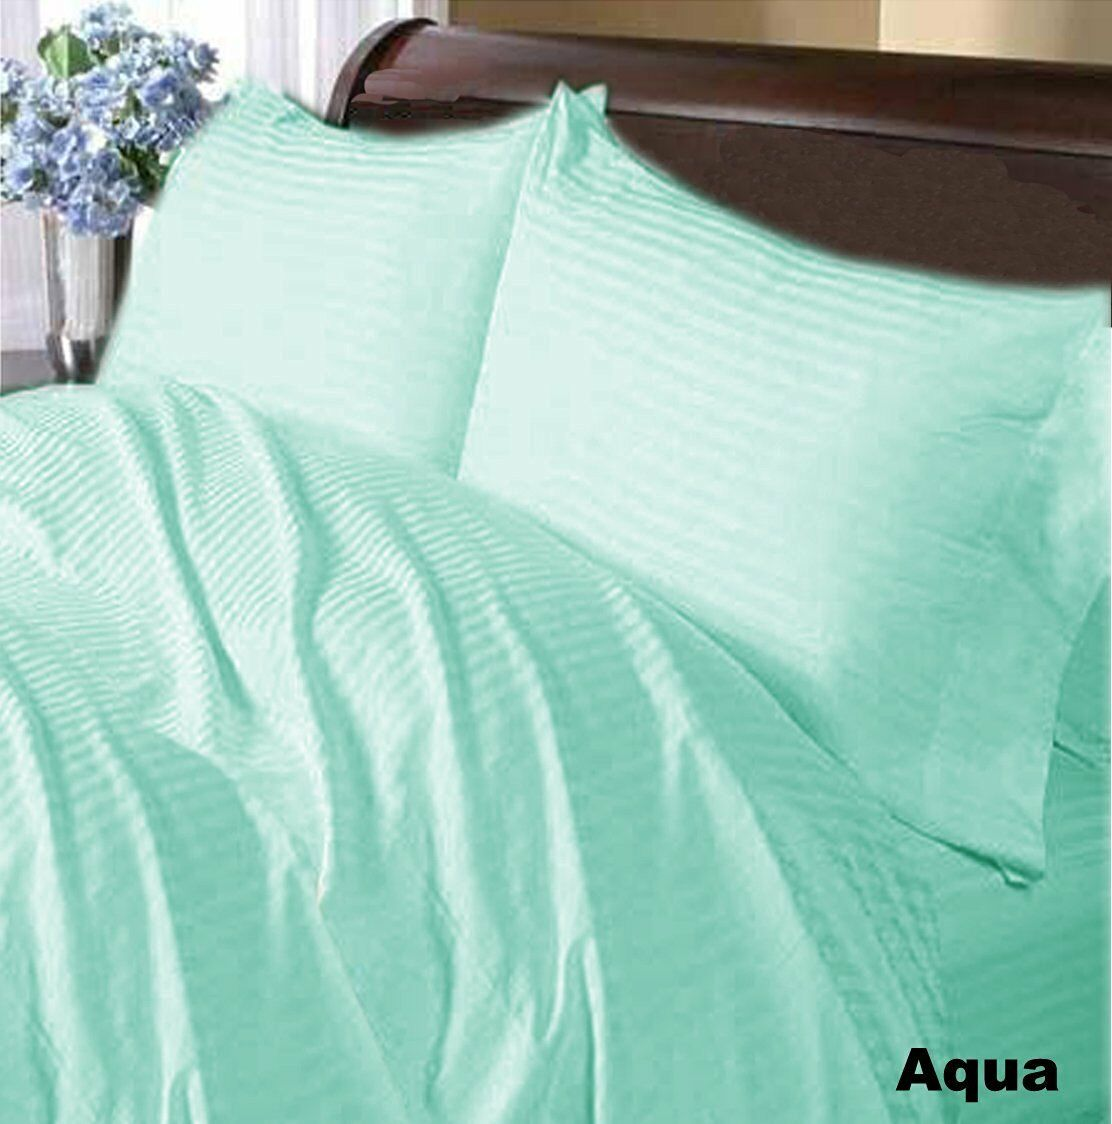 1000 Count Delux Bedding Collection Egyptian Cotton US Sizes Aqua blueeeee Striped